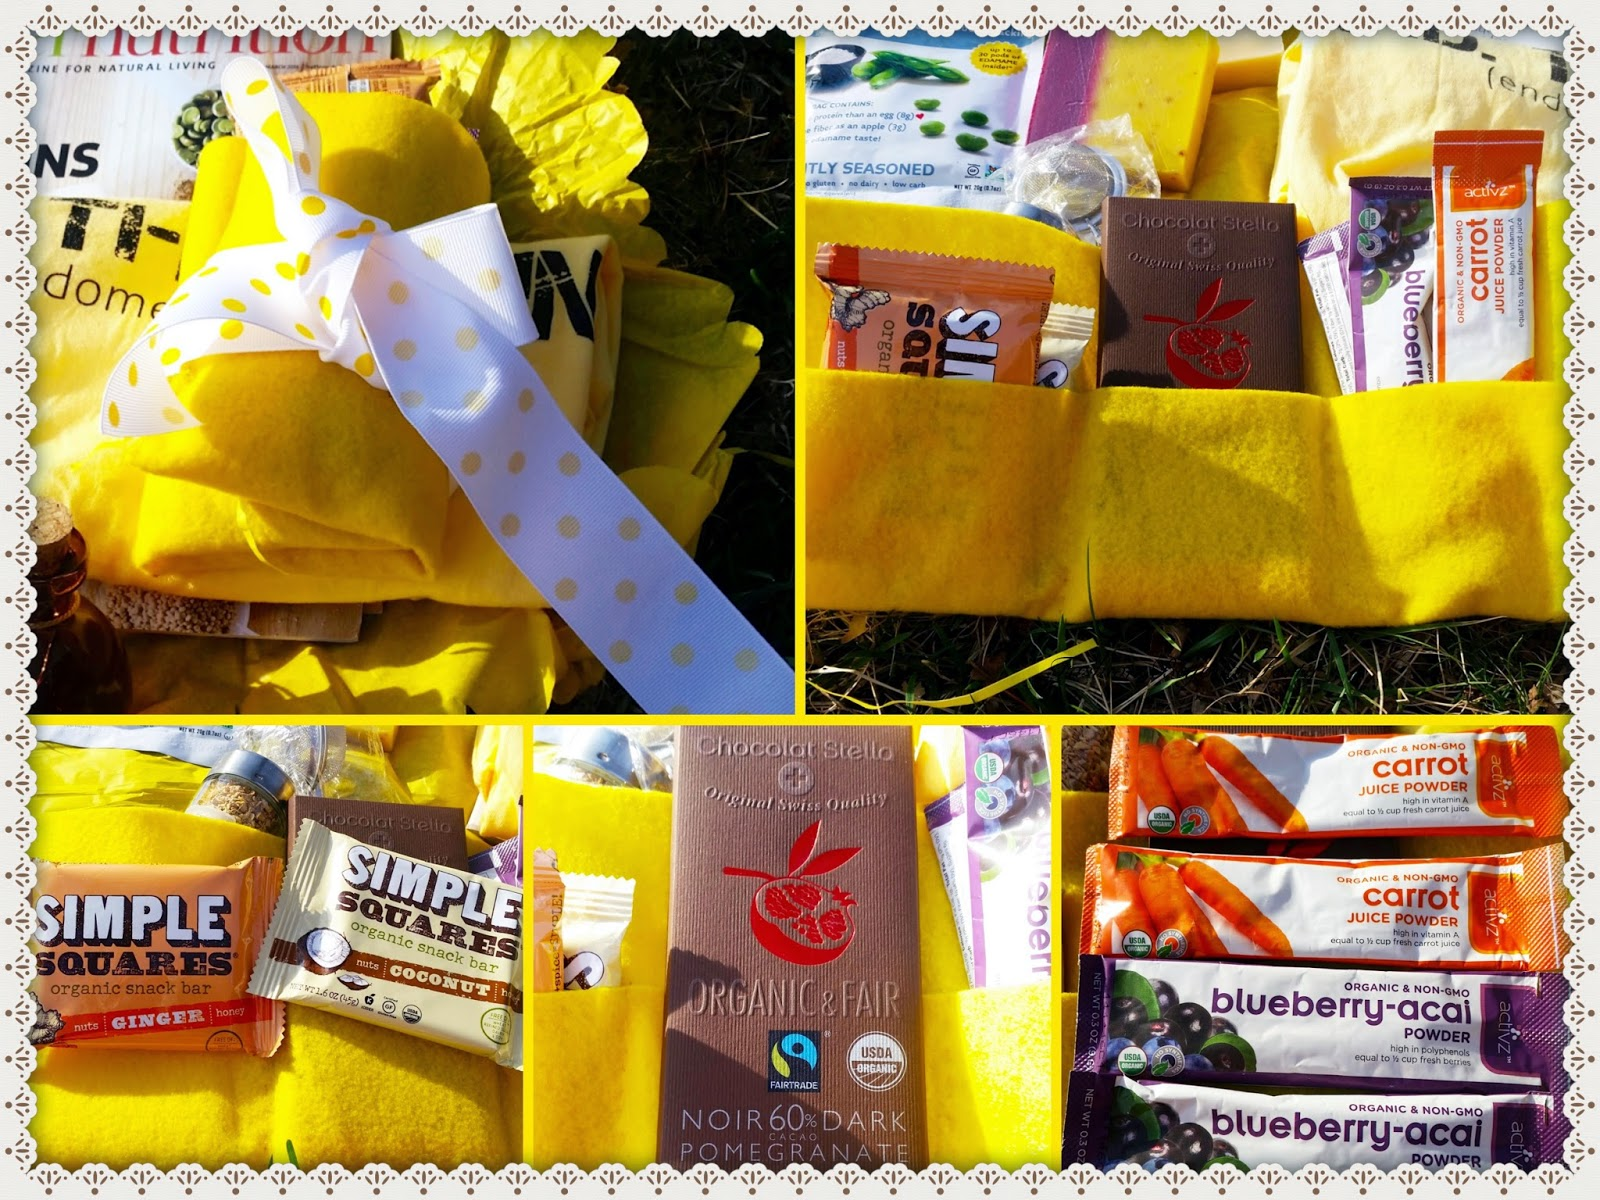 March 2015 Resilience Box Review